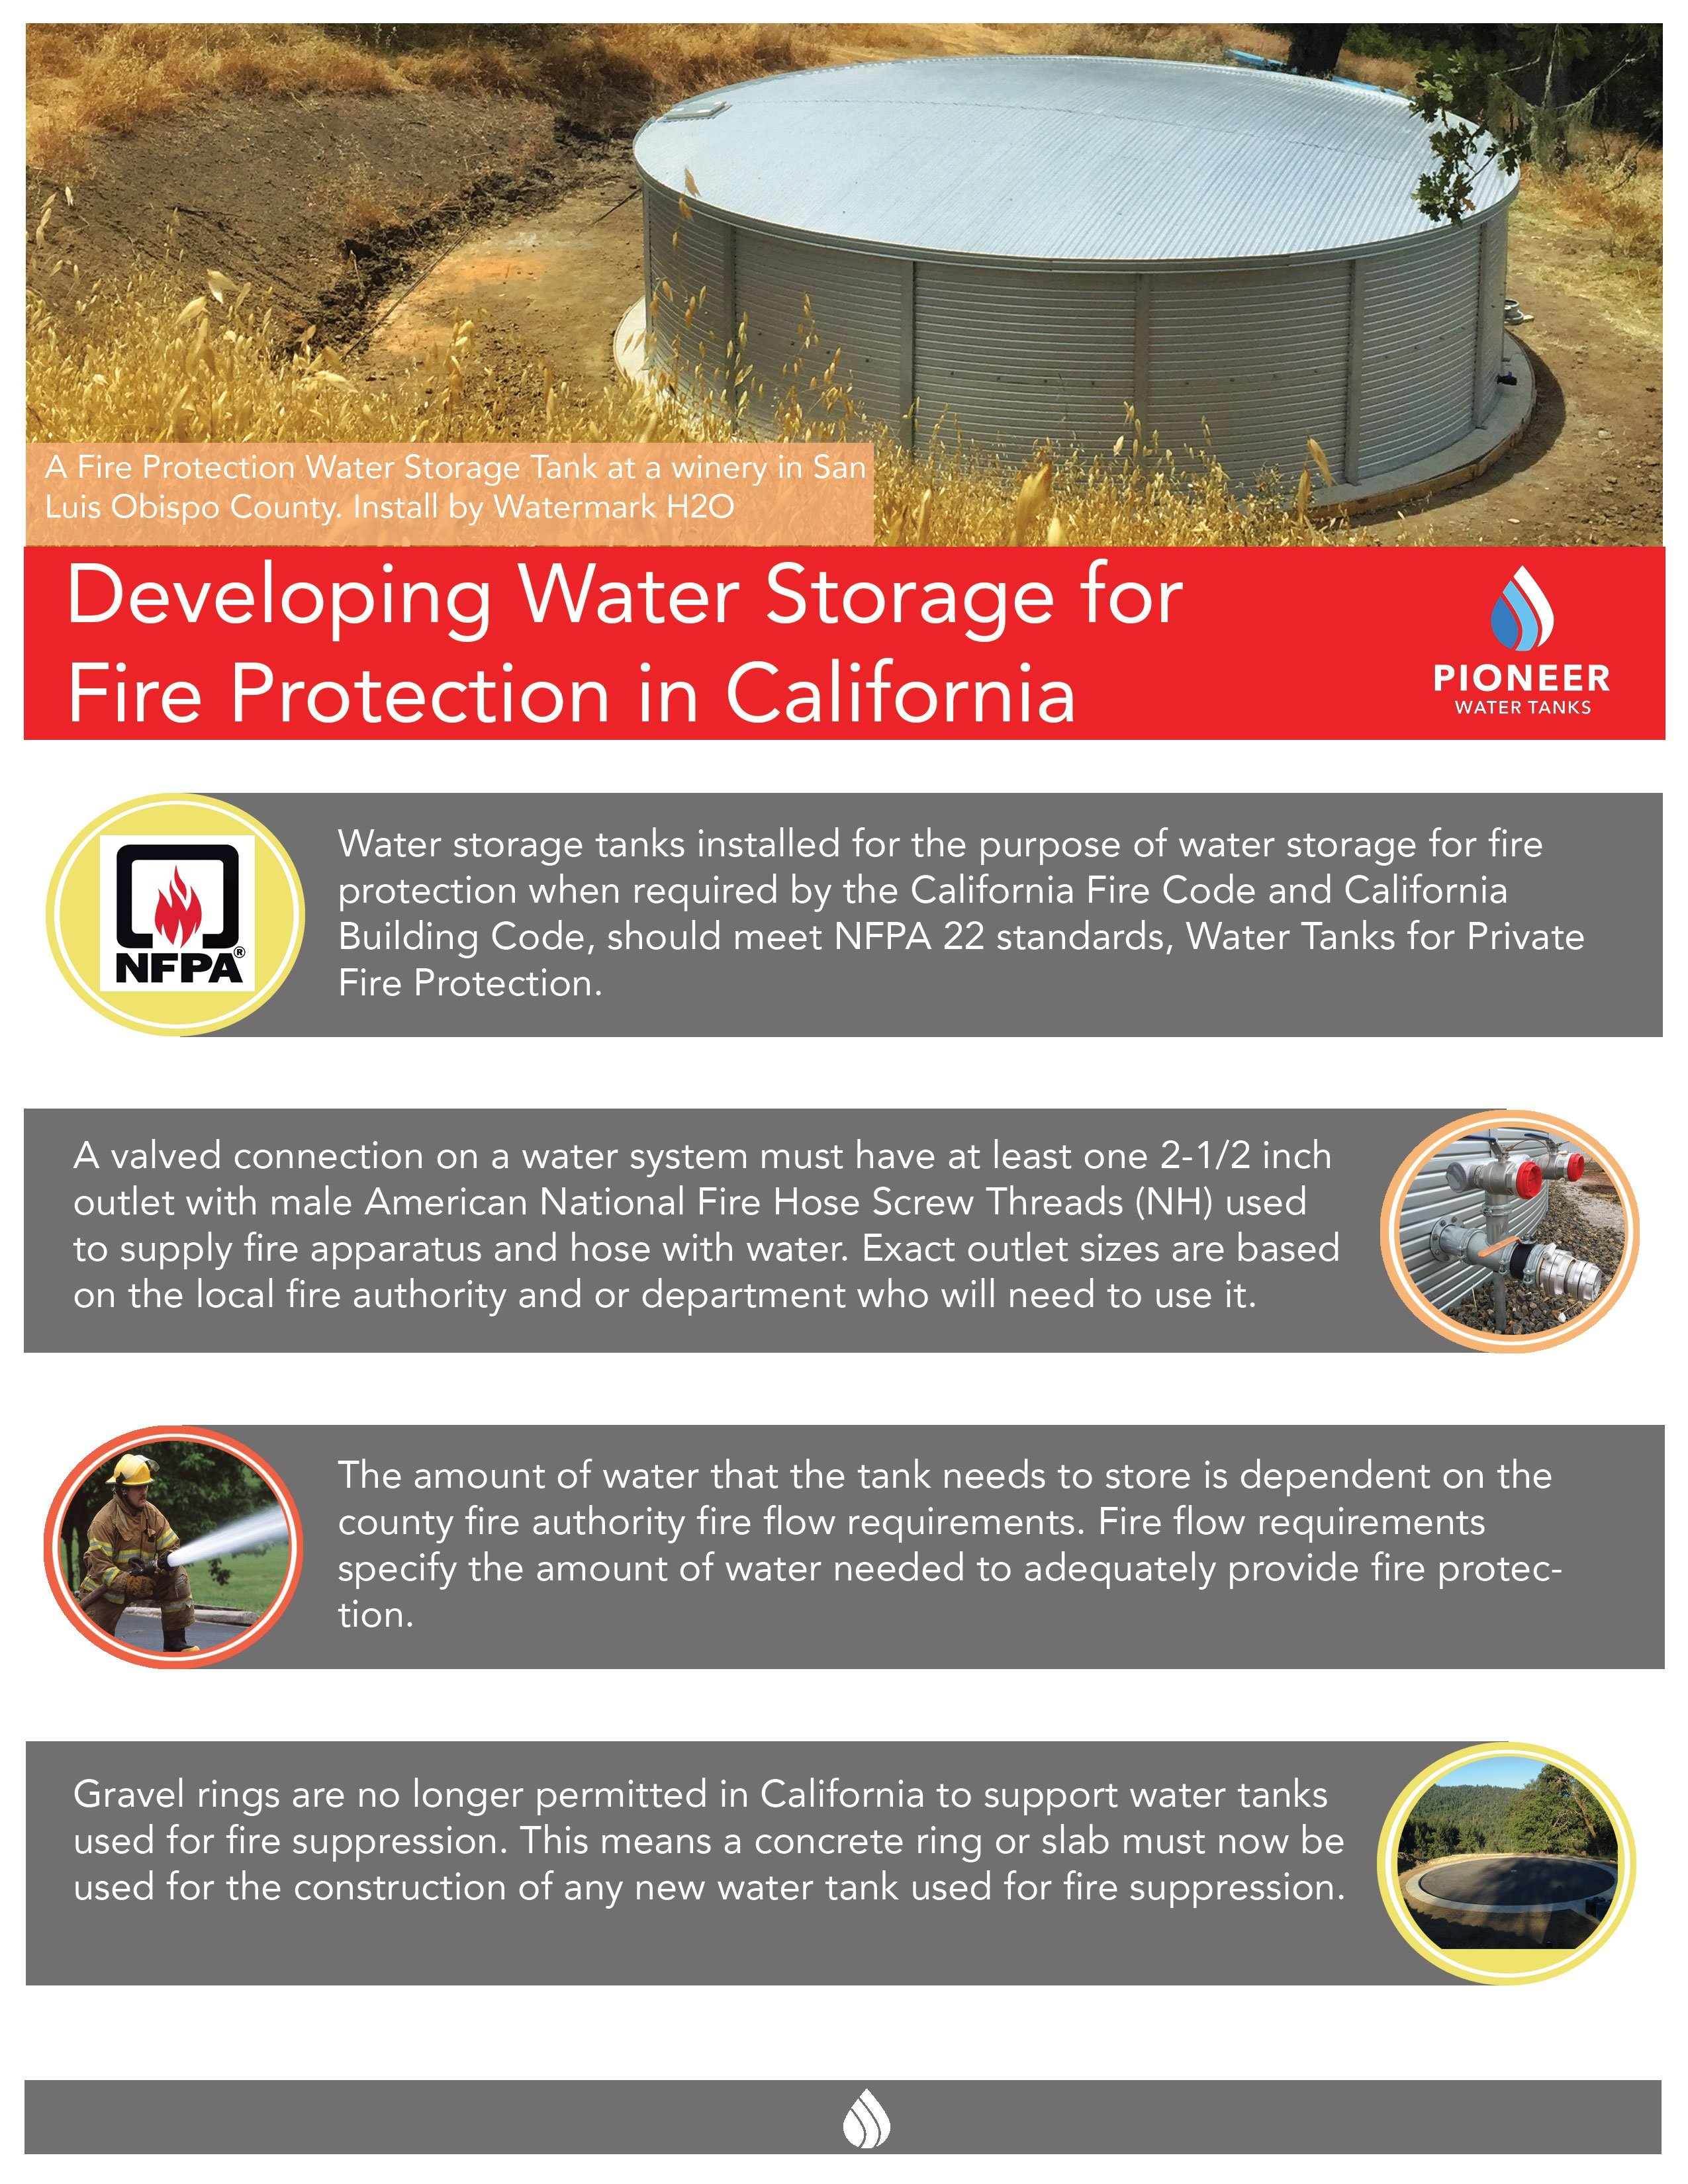 California firefighting water storage tanks for sale